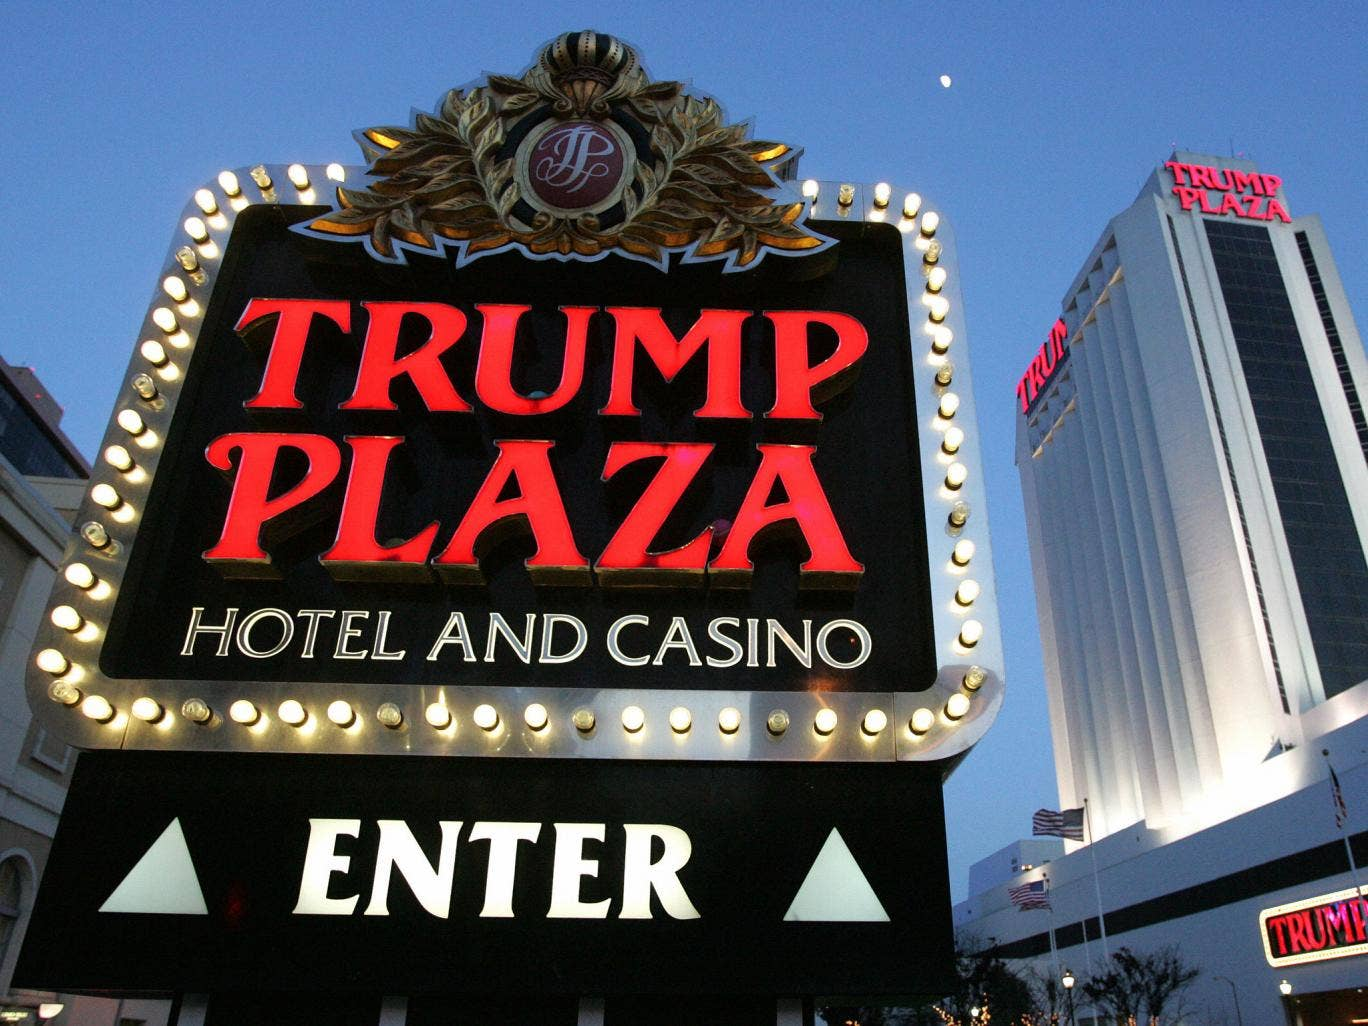 Donald Trump owns only a small stake in the Trump Plaza Hotel and Casino's parent company in Atlantic City, New Jersey